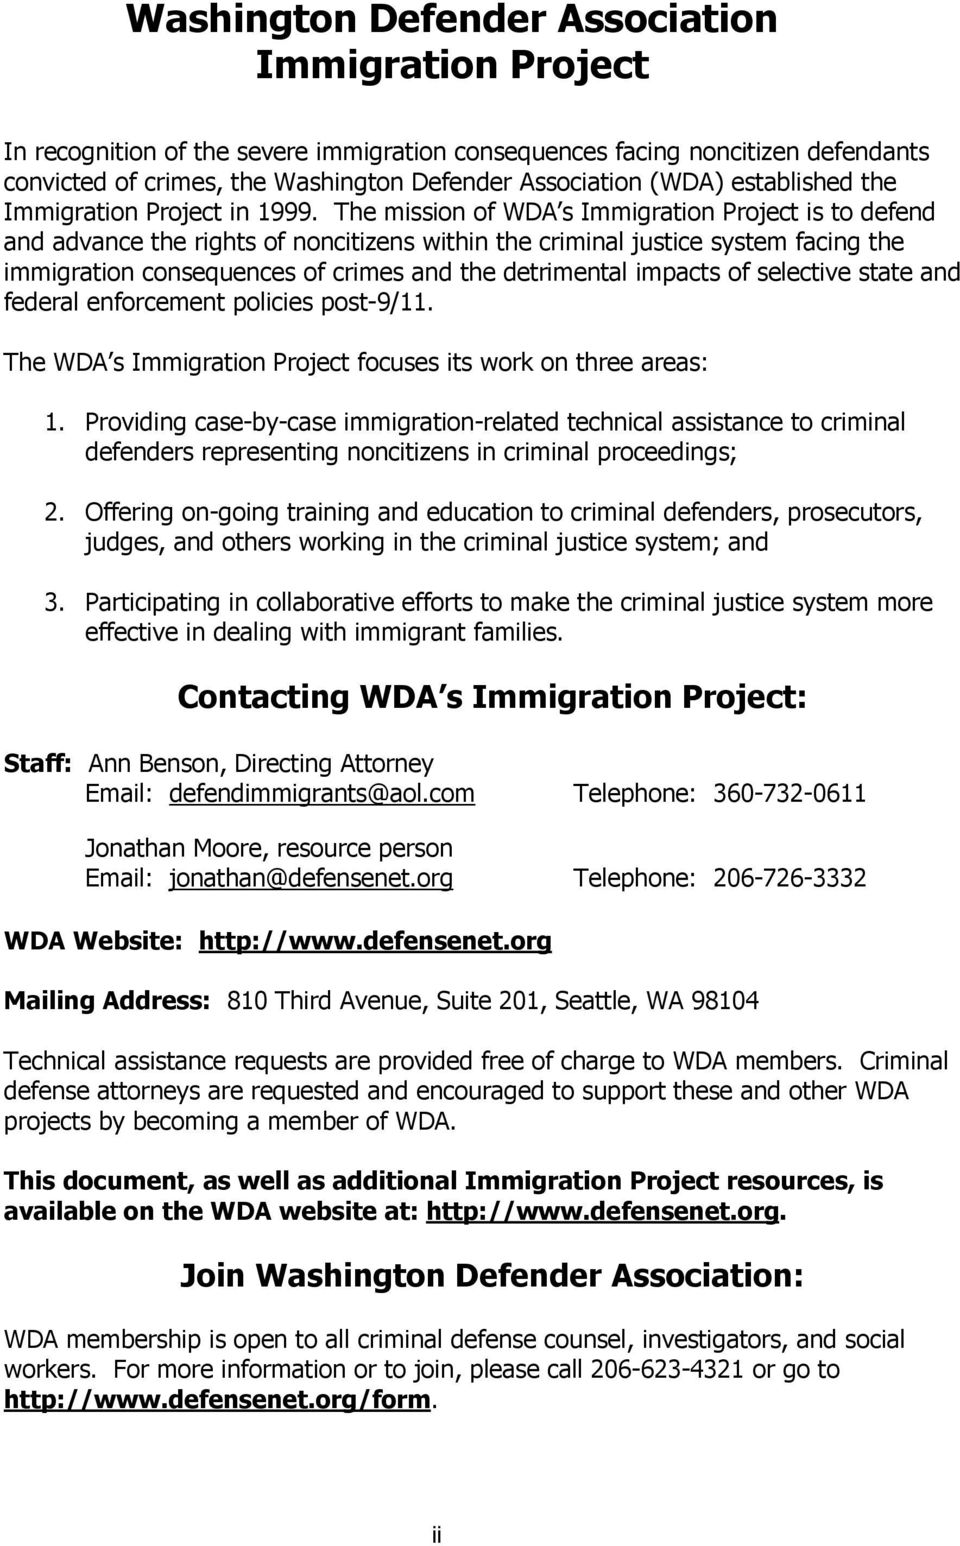 The mission of WDA s Immigration Project is to defend and advance the rights of noncitizens within the criminal justice system facing the immigration consequences of crimes and the detrimental